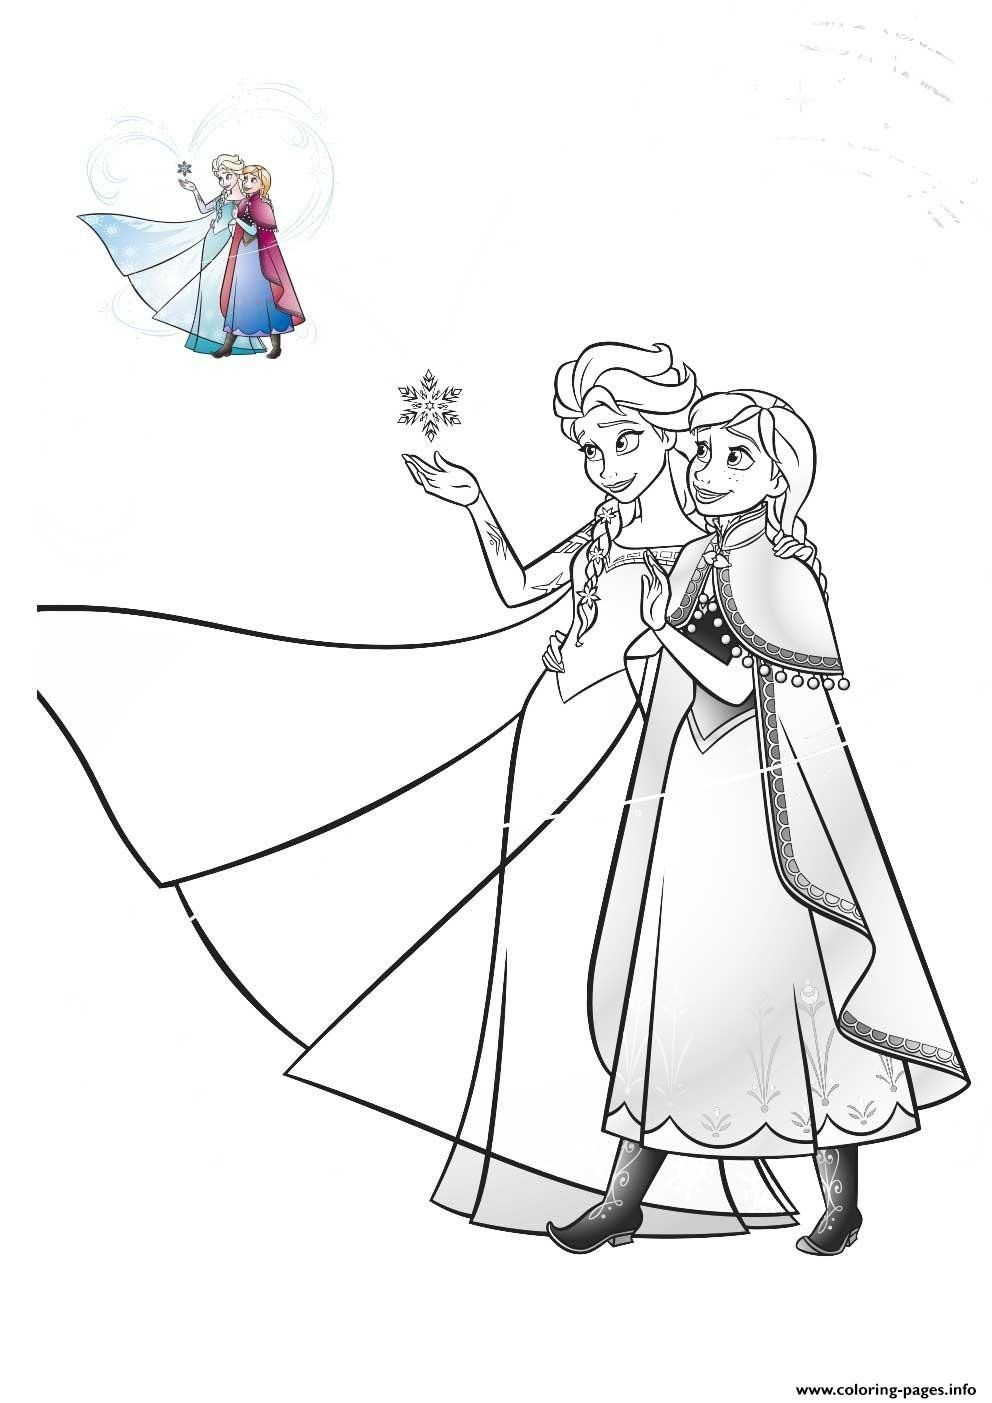 Anna Frozen Coloring Pages Elsa Anna Family Love Frozen Coloring Pages Printable Elsa Coloring Pages Frozen Coloring Pages Frozen Coloring